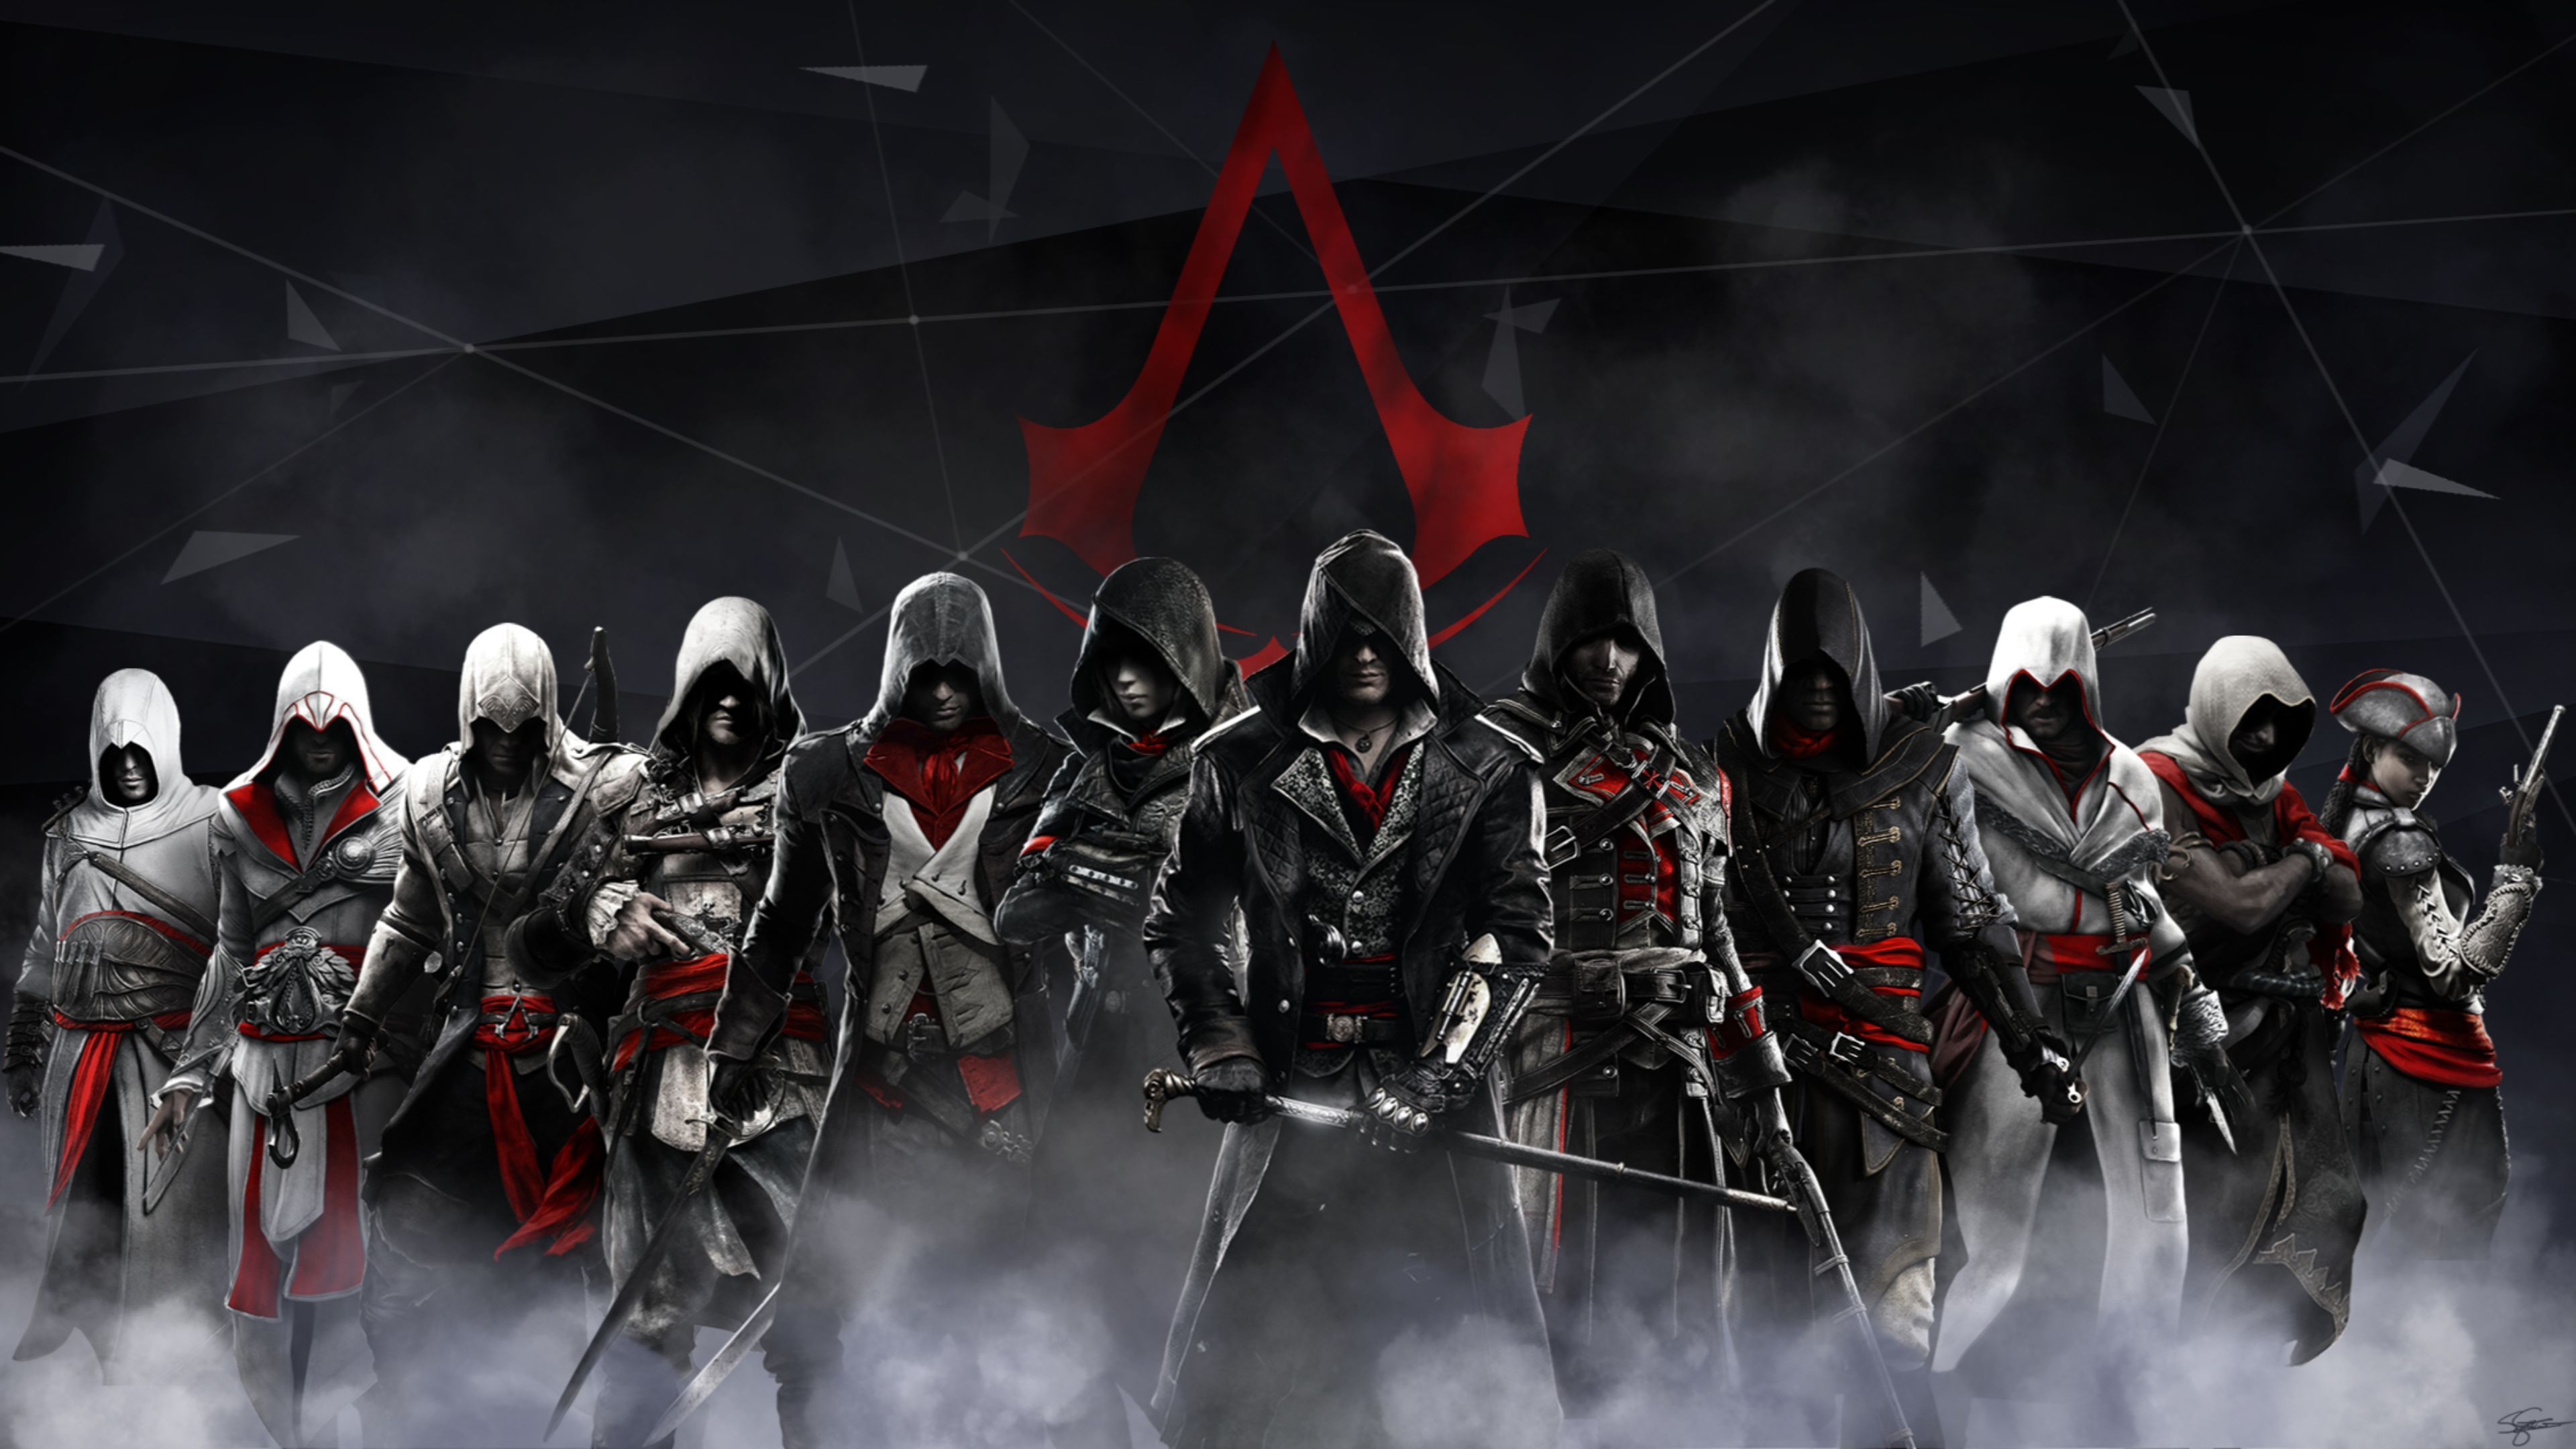 Assassin S Creed Wallpapers On Wallpaperdog